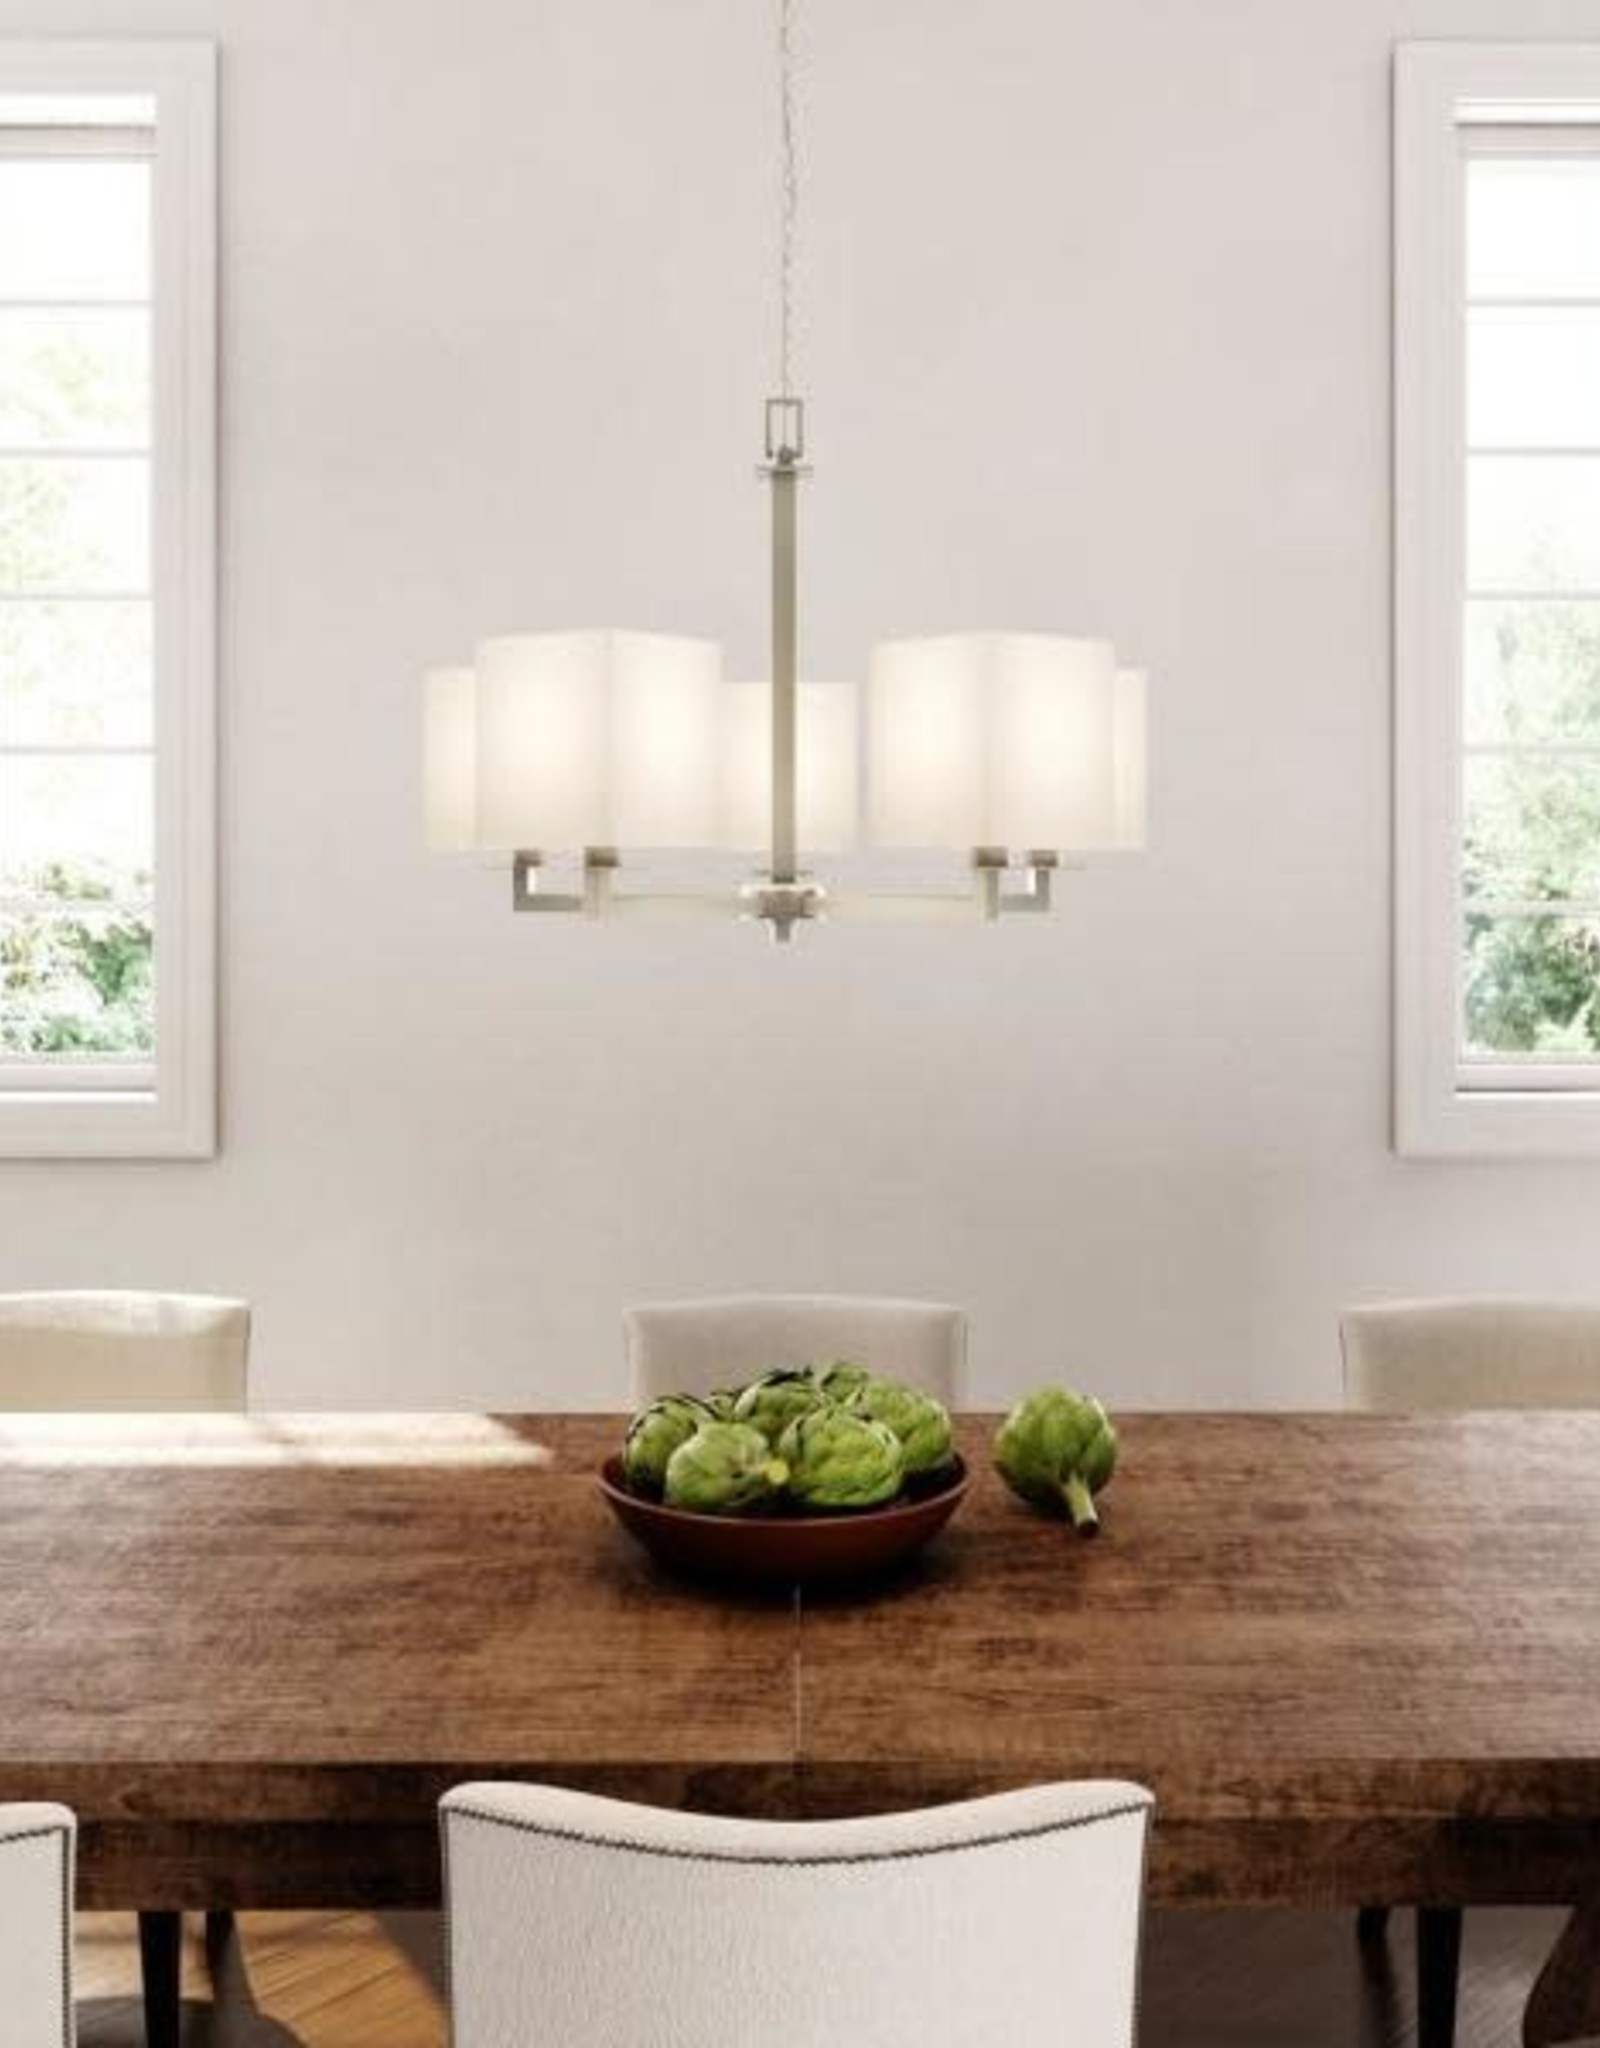 Hampton Bay Menlo Park 5-Light Brushed Nickel Chandelier with Cream Fabric Shades